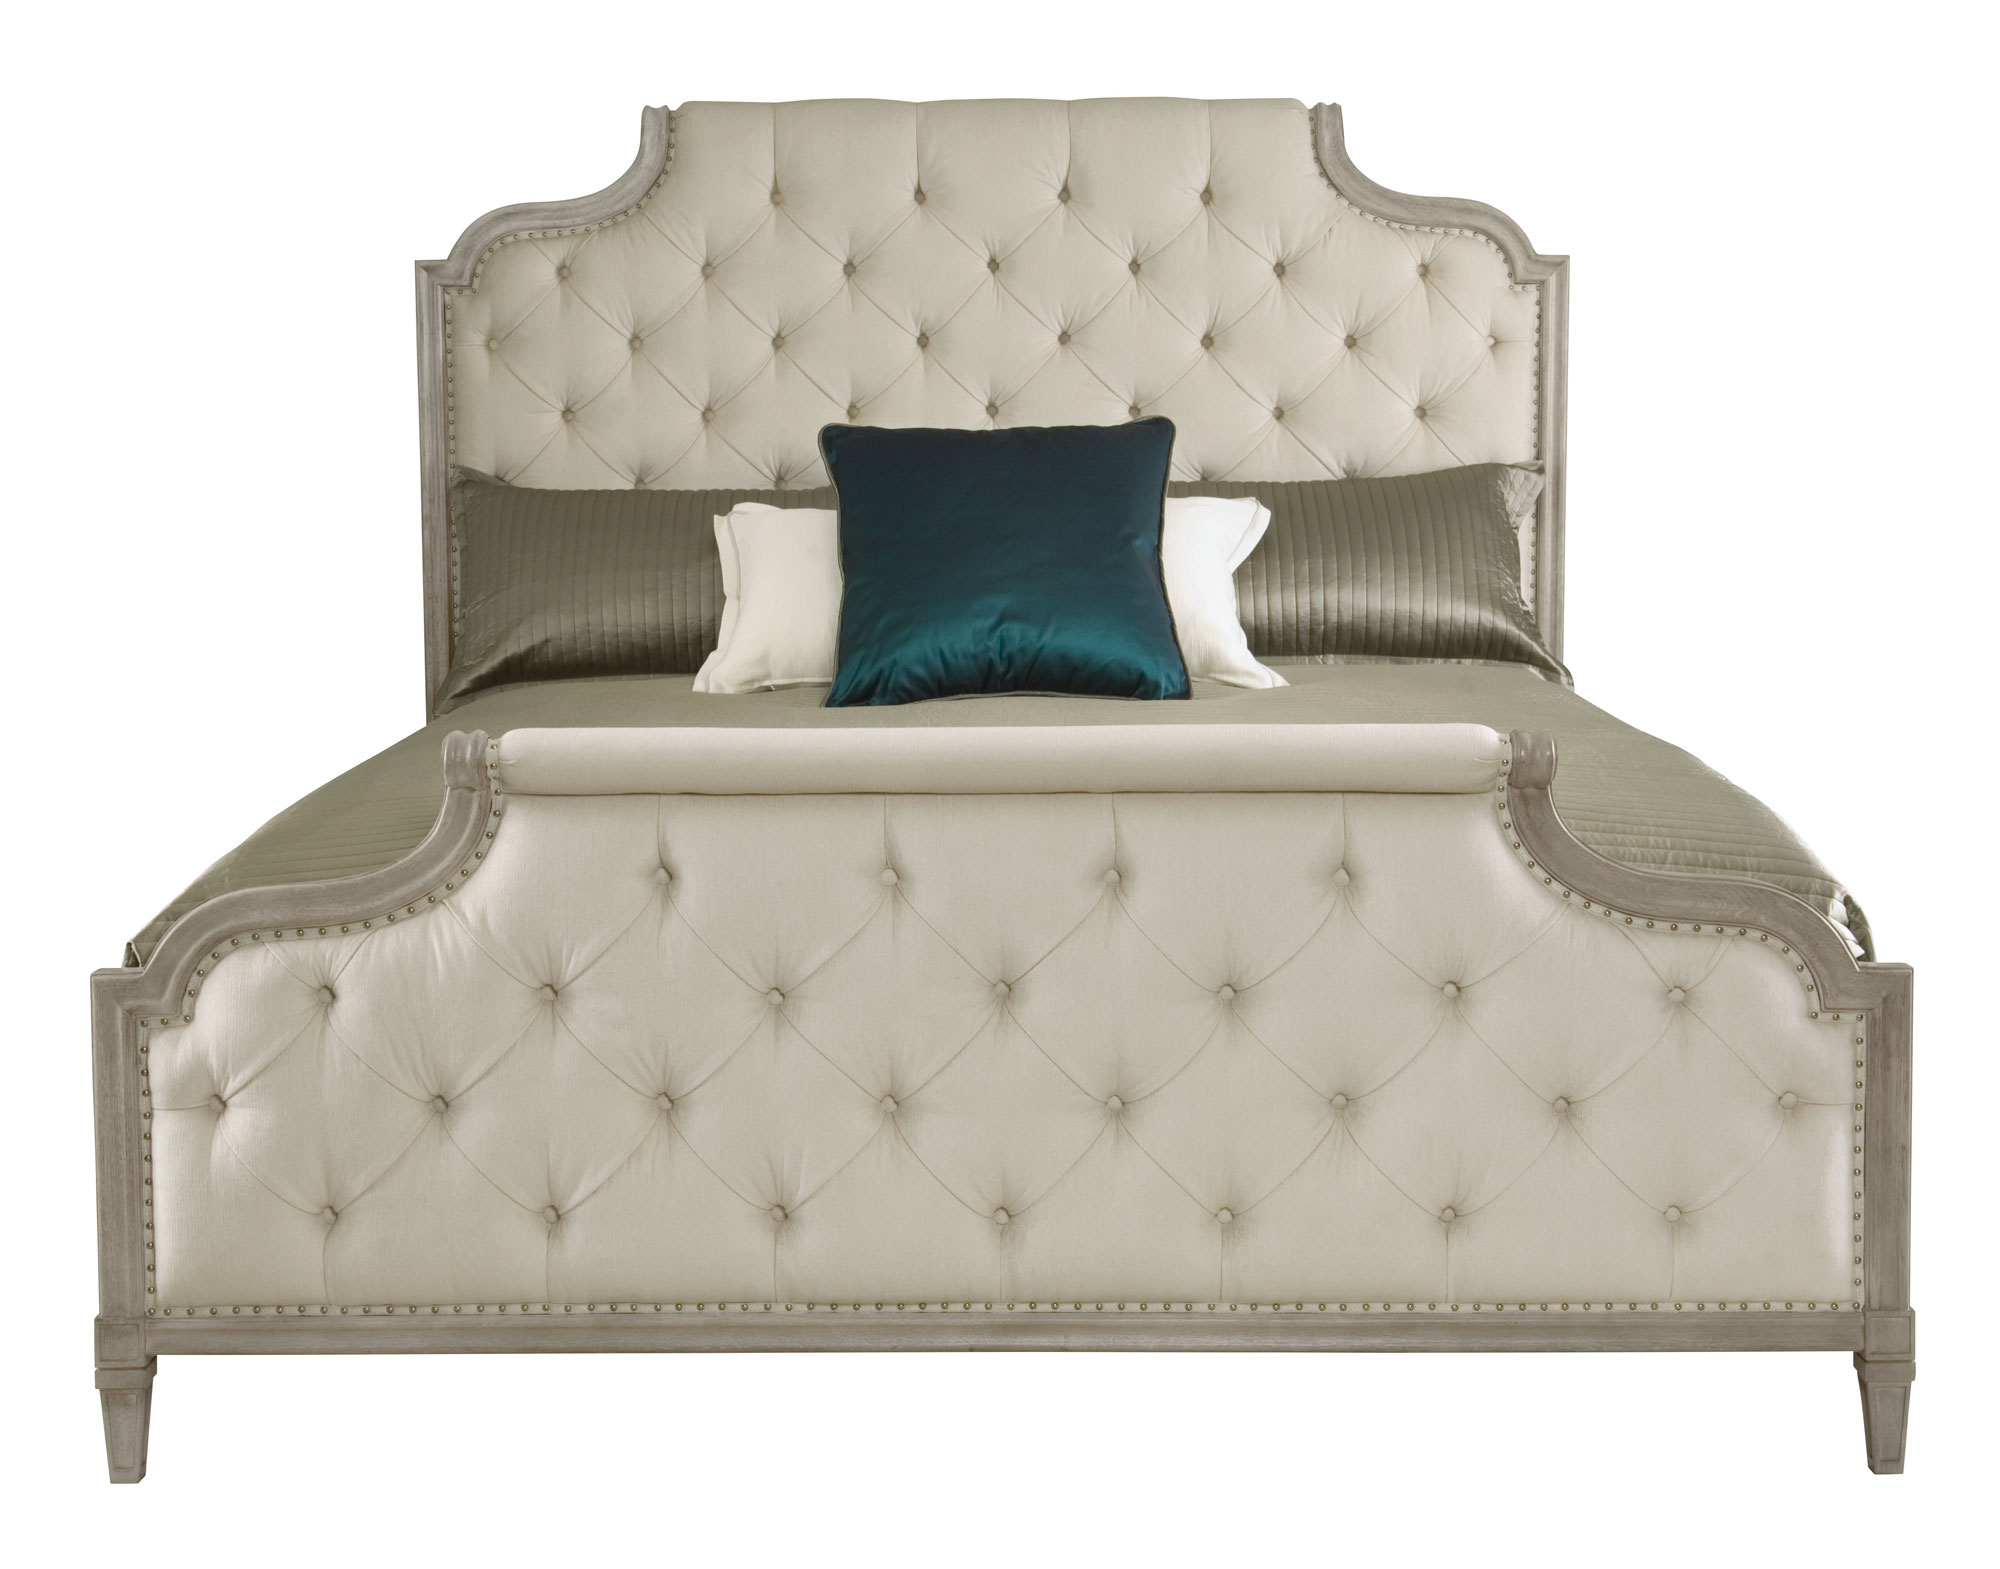 Upholstered bed bernhardt for Upholstered beds